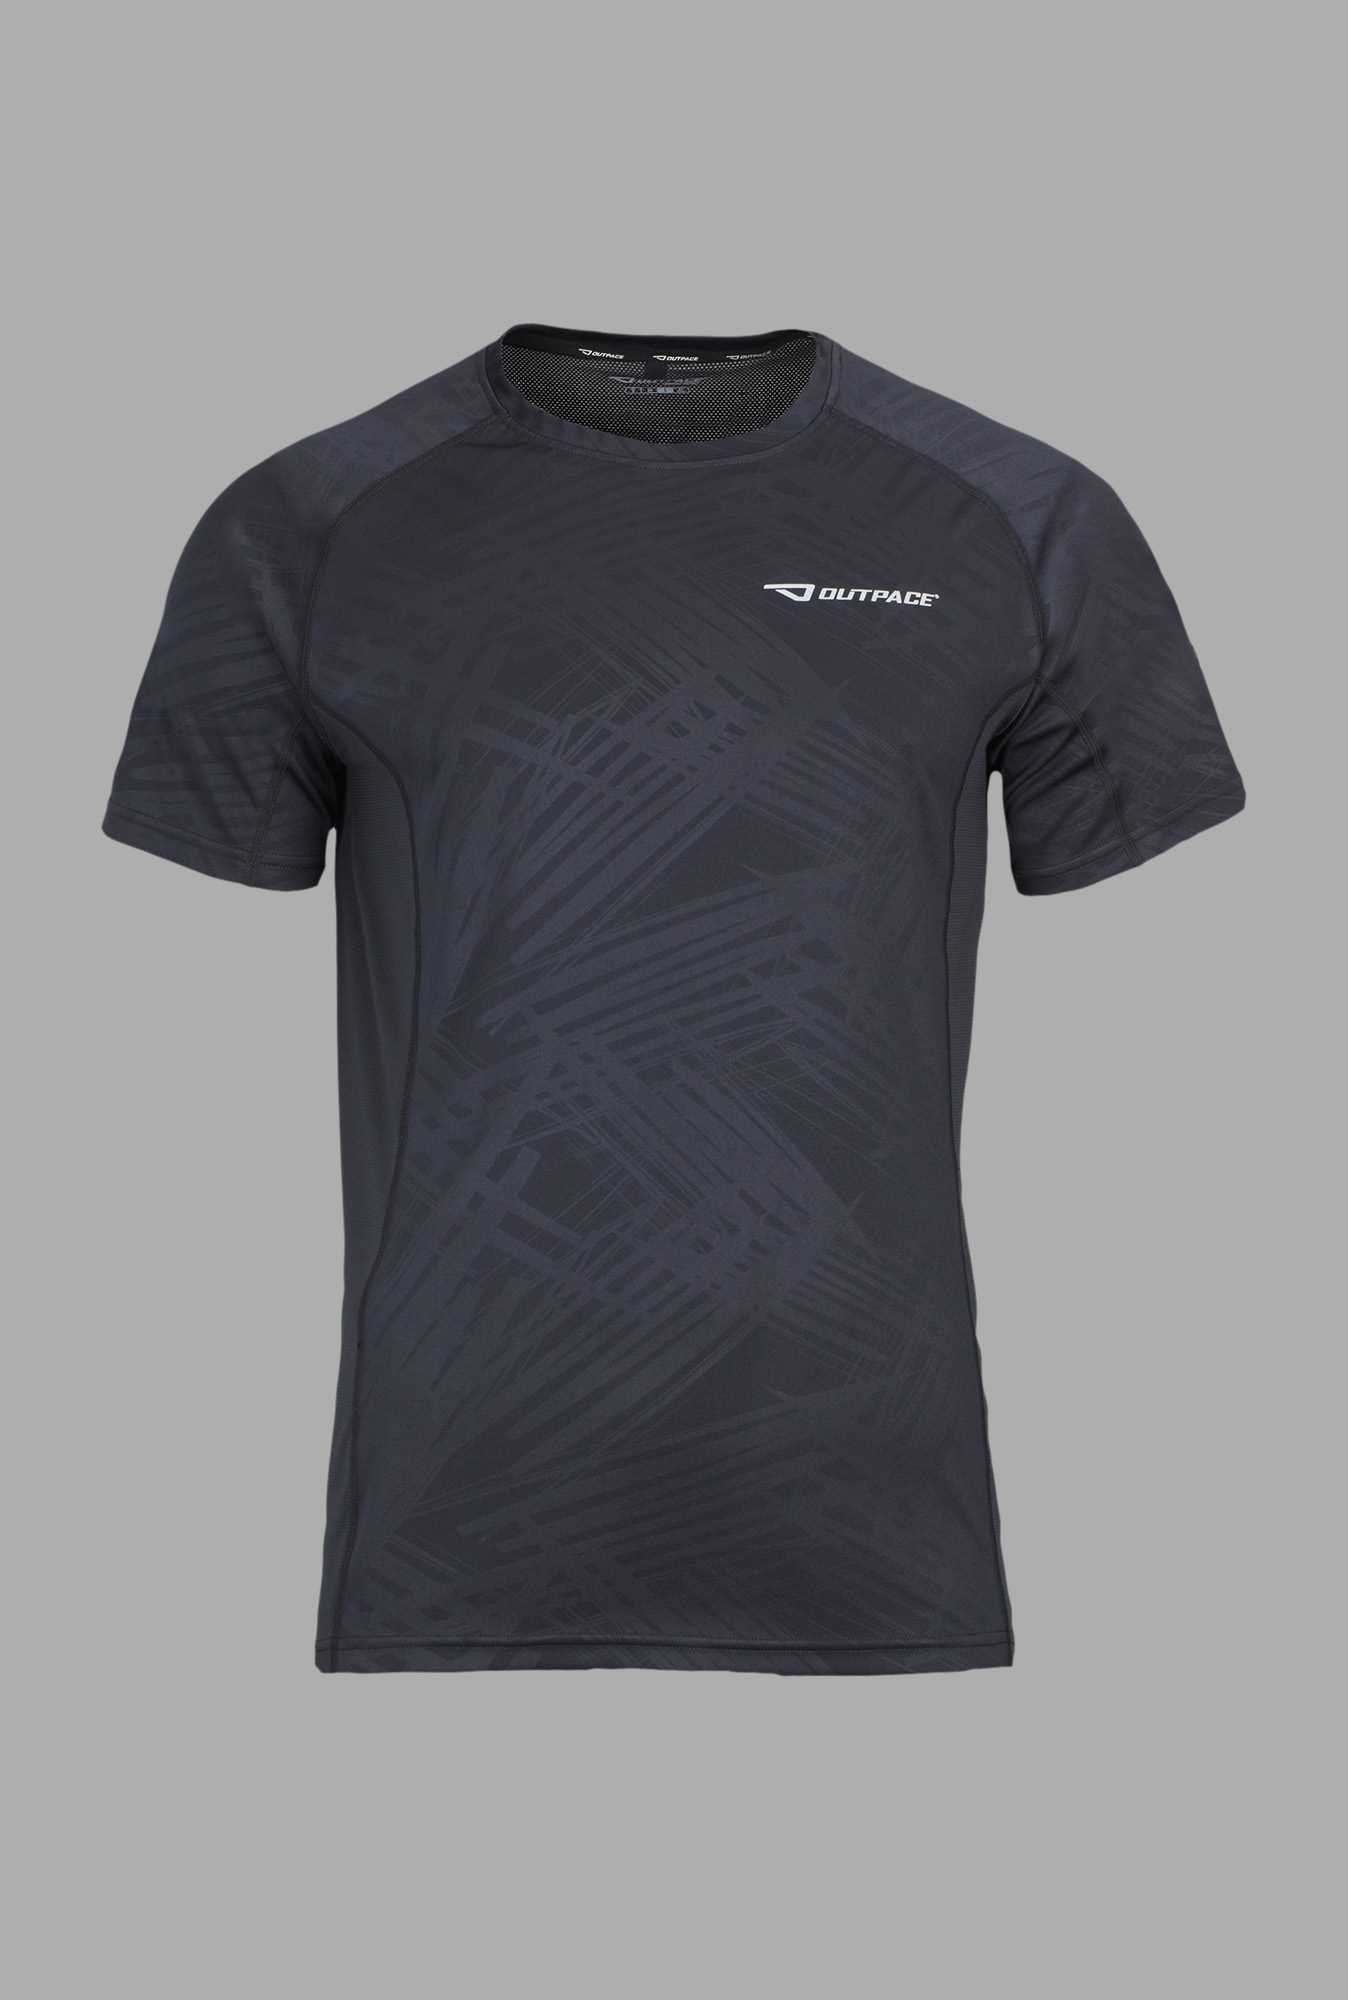 Outpace Black Running T Shirt